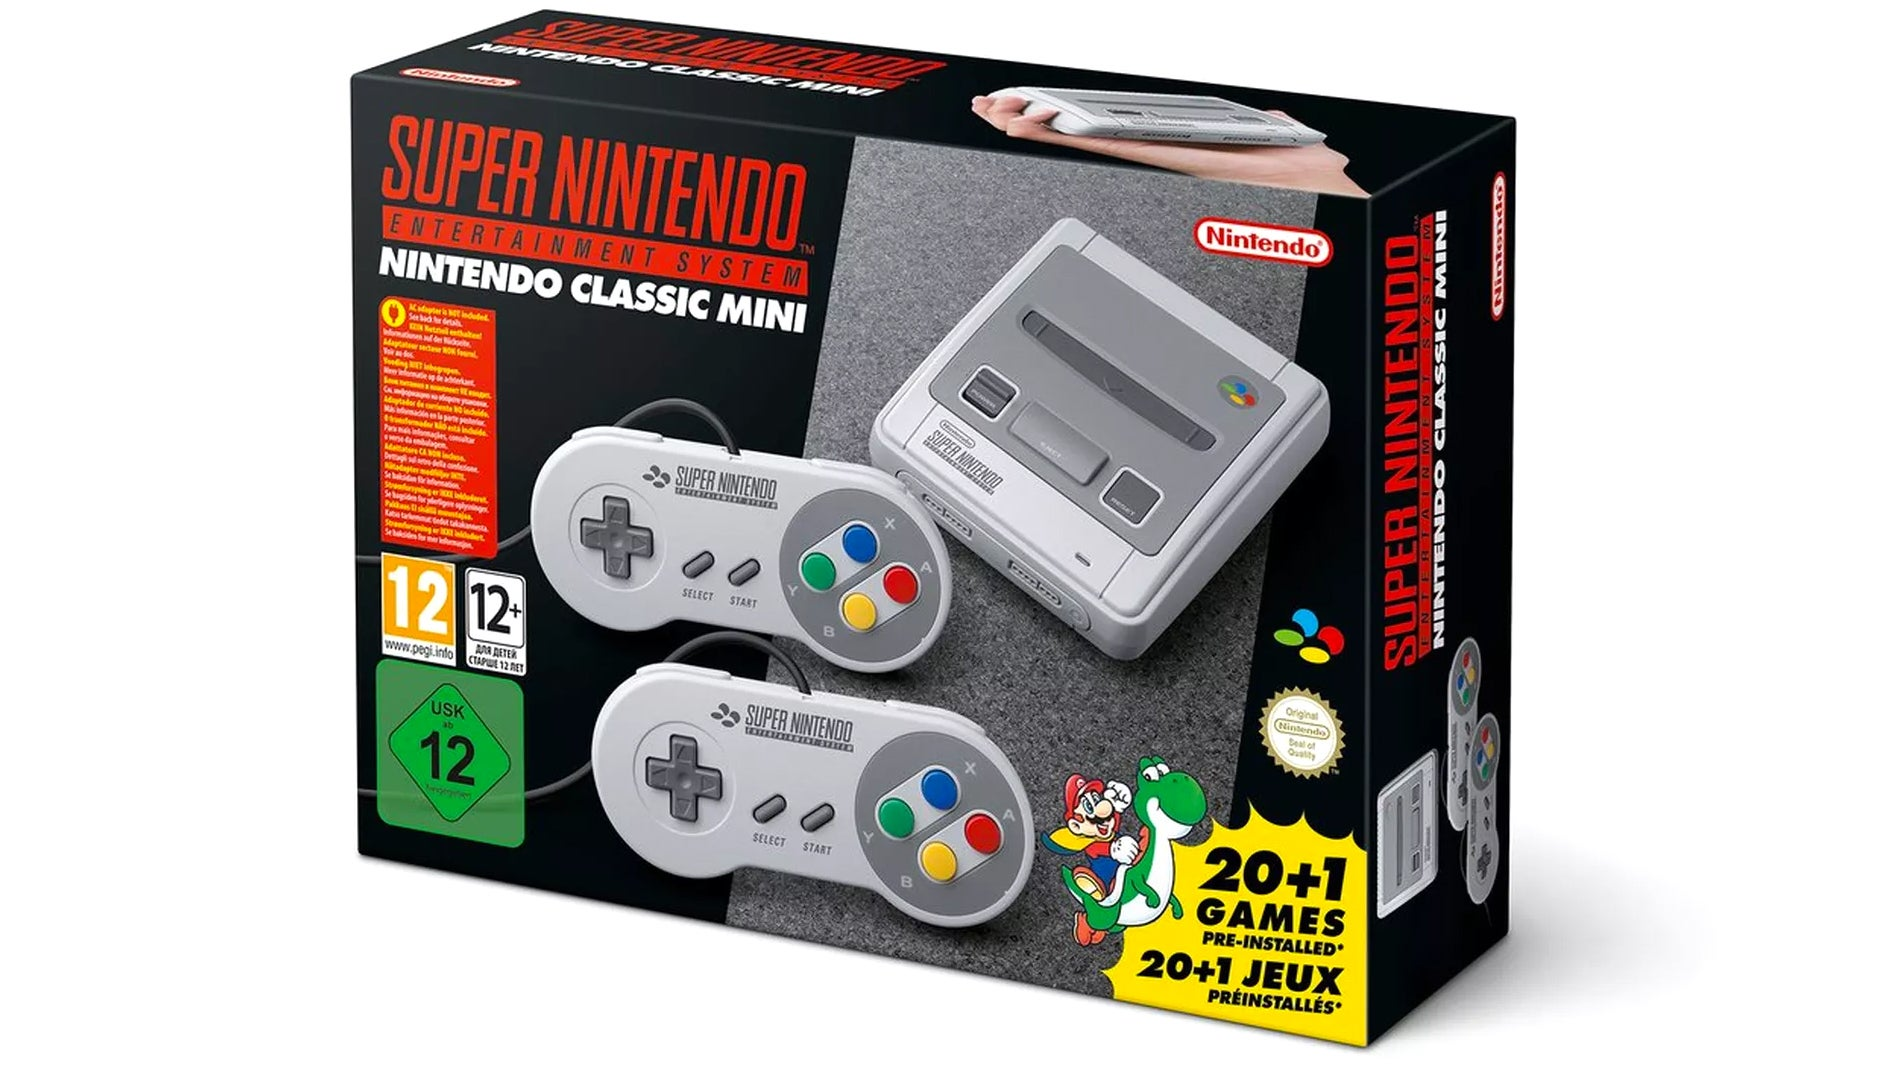 SNES Classic Edition Production